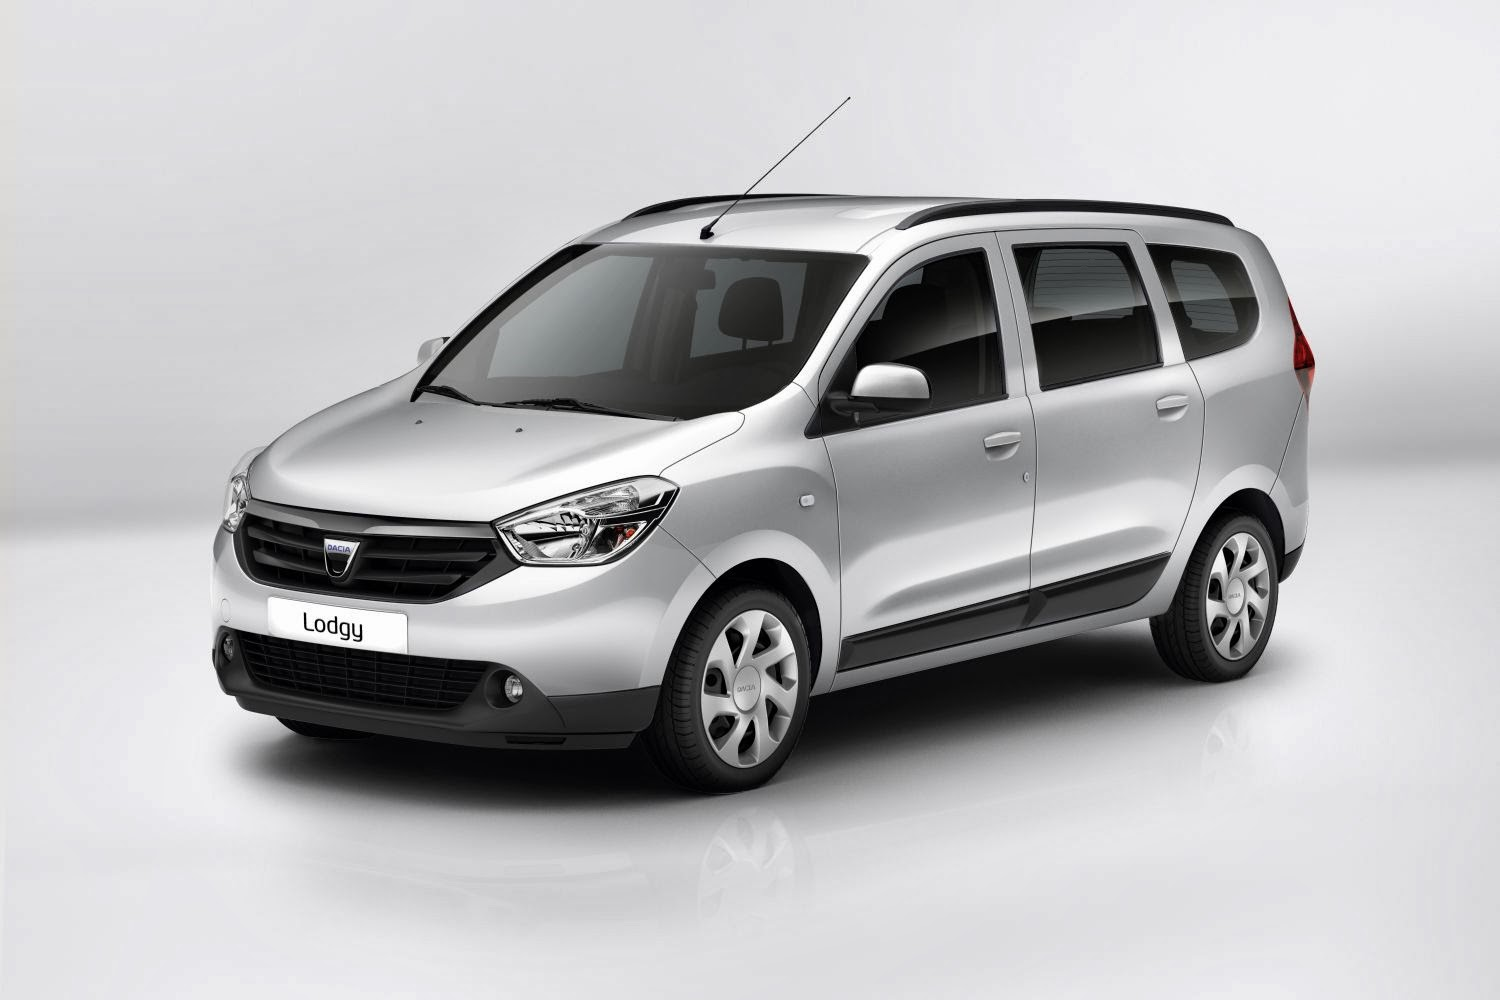 lodgy dacia